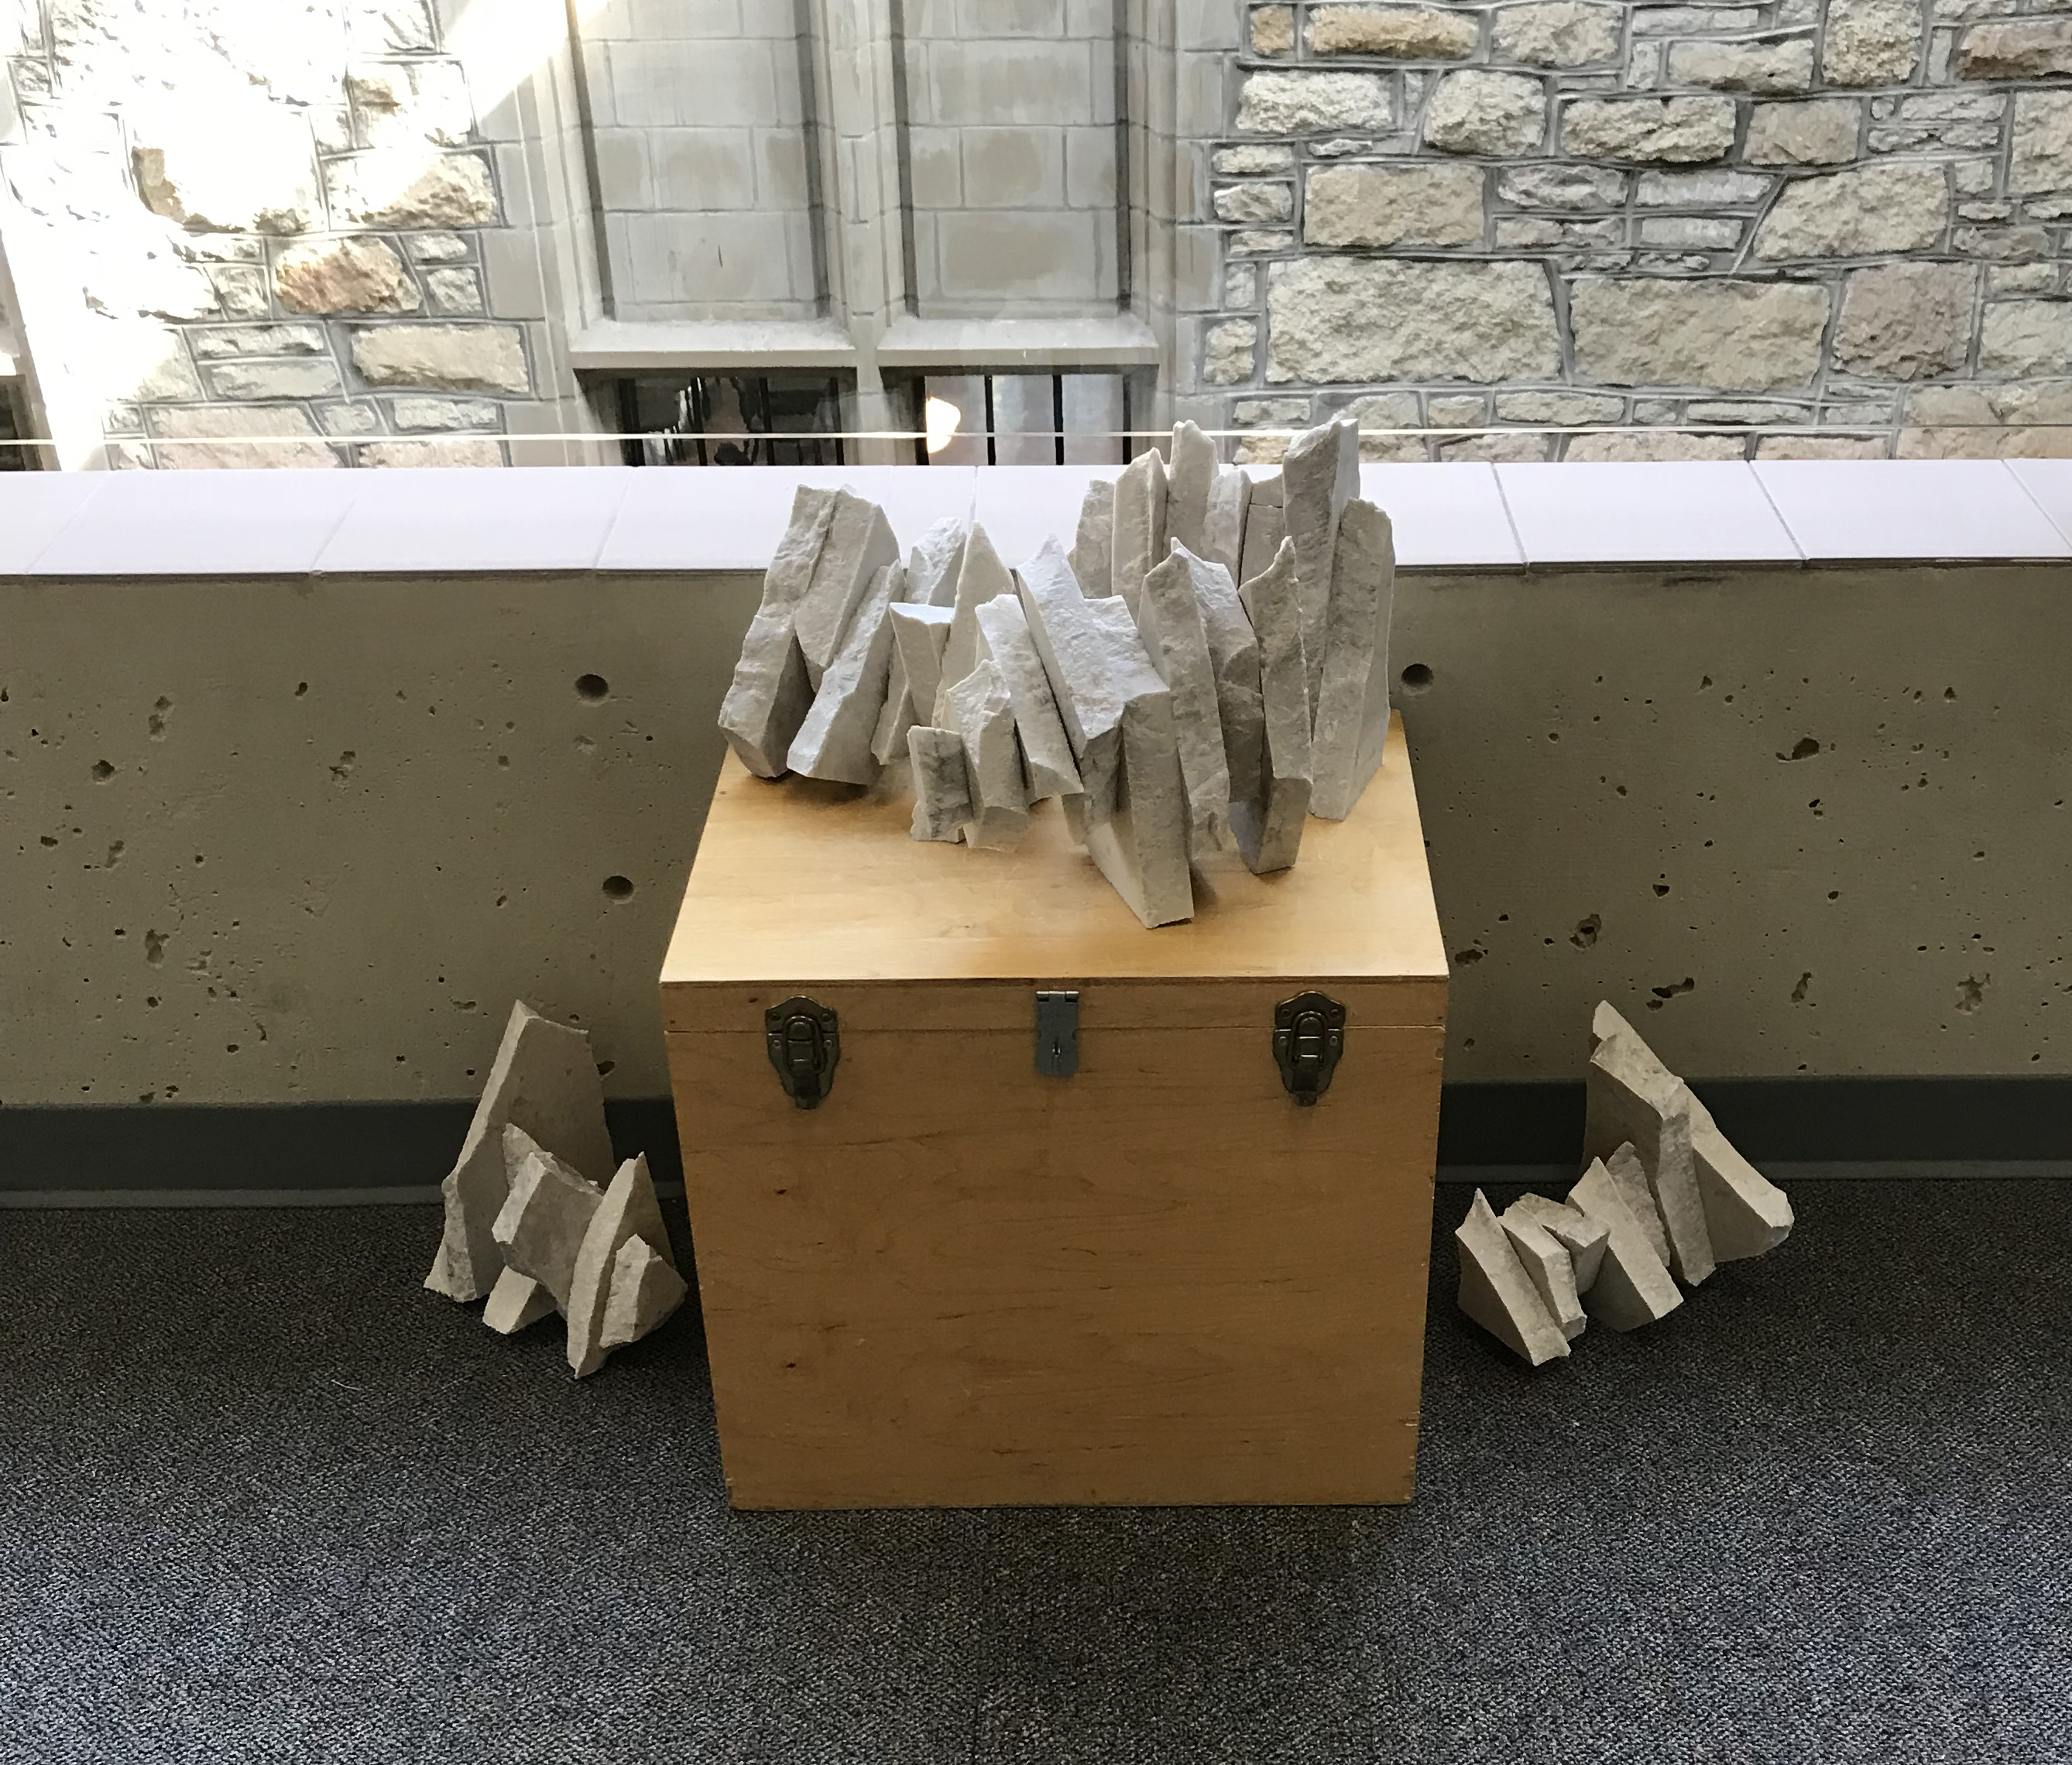 An art project created from discarded and repurposed stone countertops for ARTCycled 2018 by Gloria Simplkins